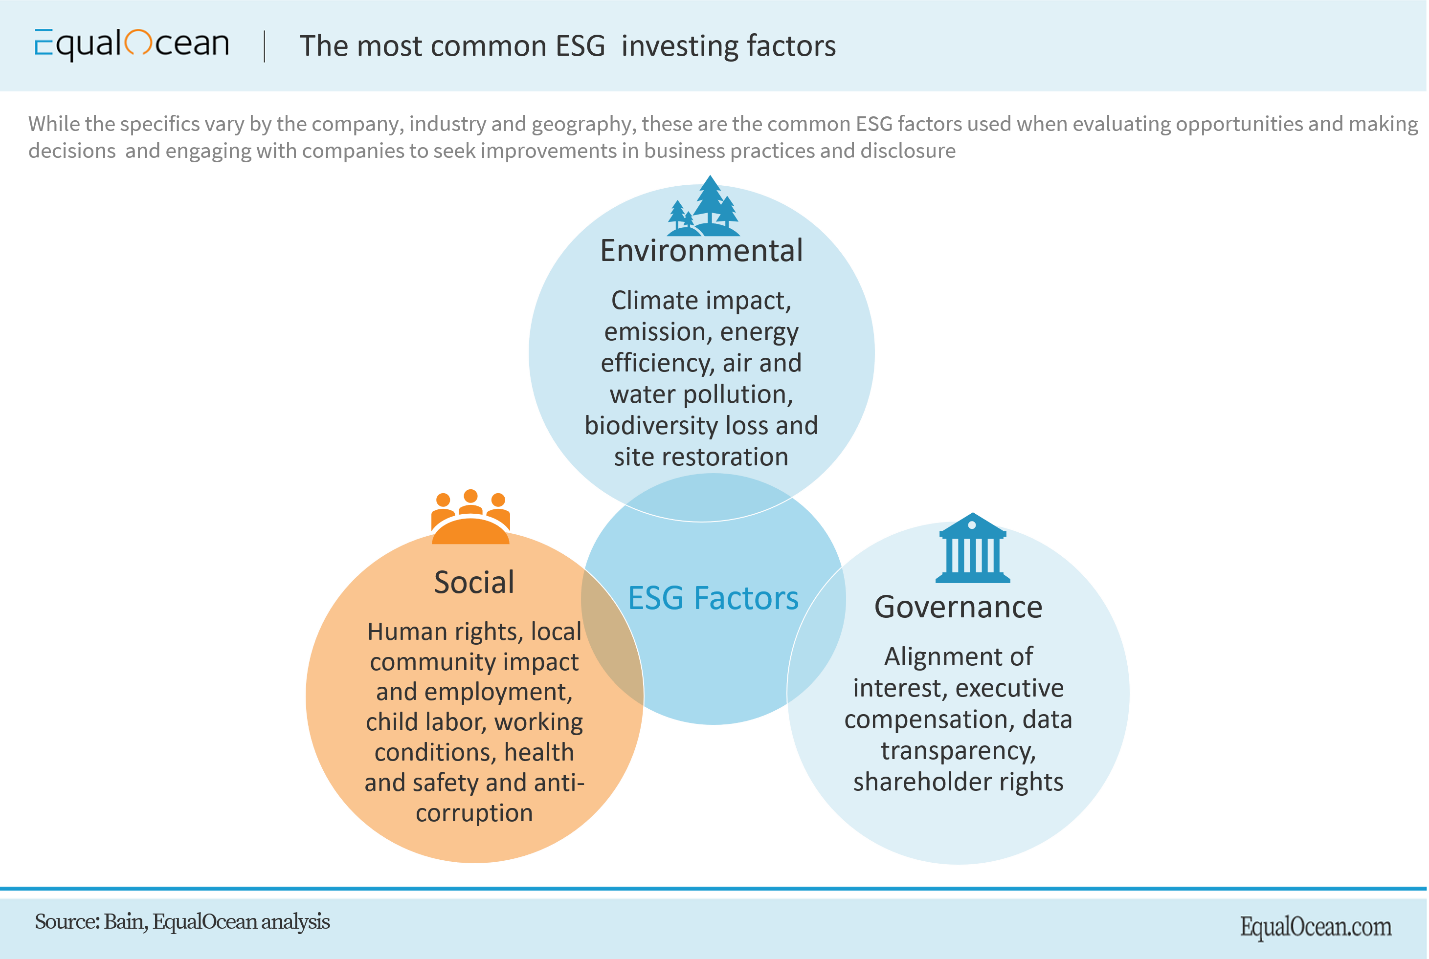 ESG Standards Are Going to Be a Challenge for Chinese Companies - EqualOcean